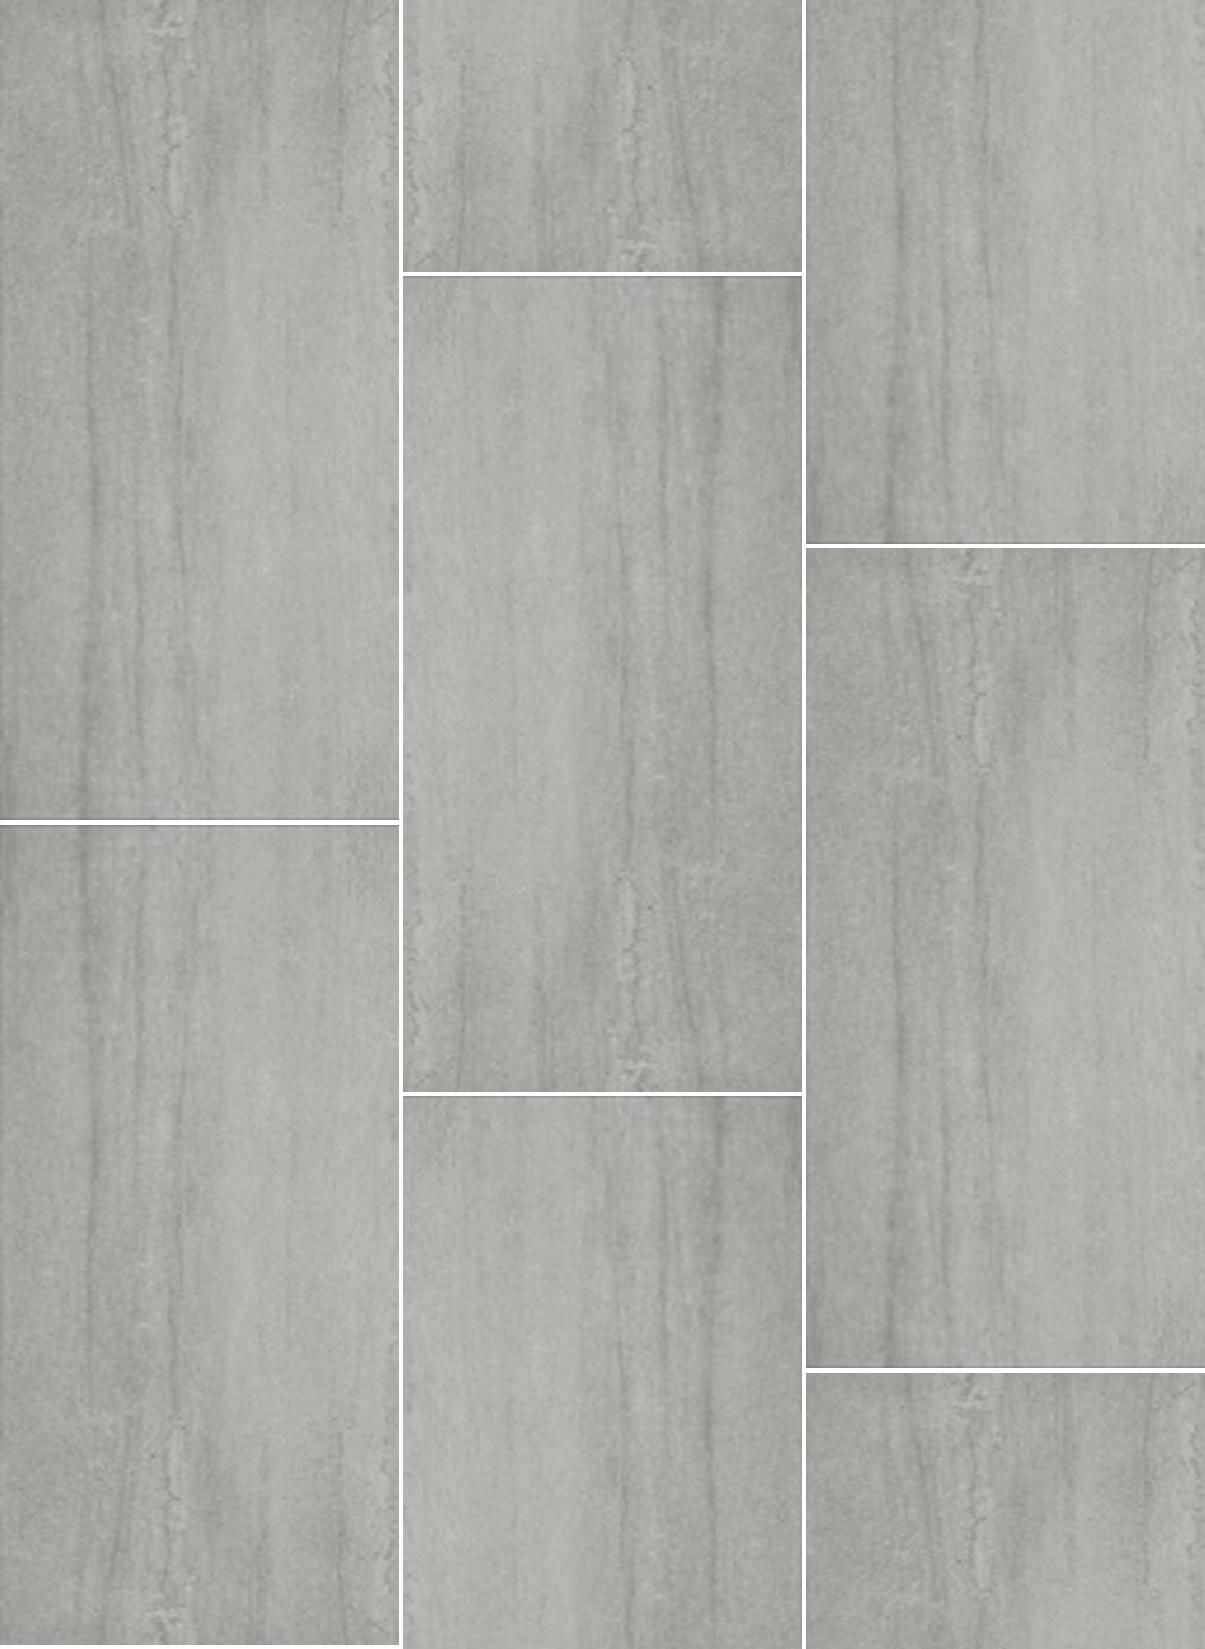 Lglimitlessdesign contest grey 12 24 floor tile nick miller design lg limitless design Bathroom wall tiles laying designs